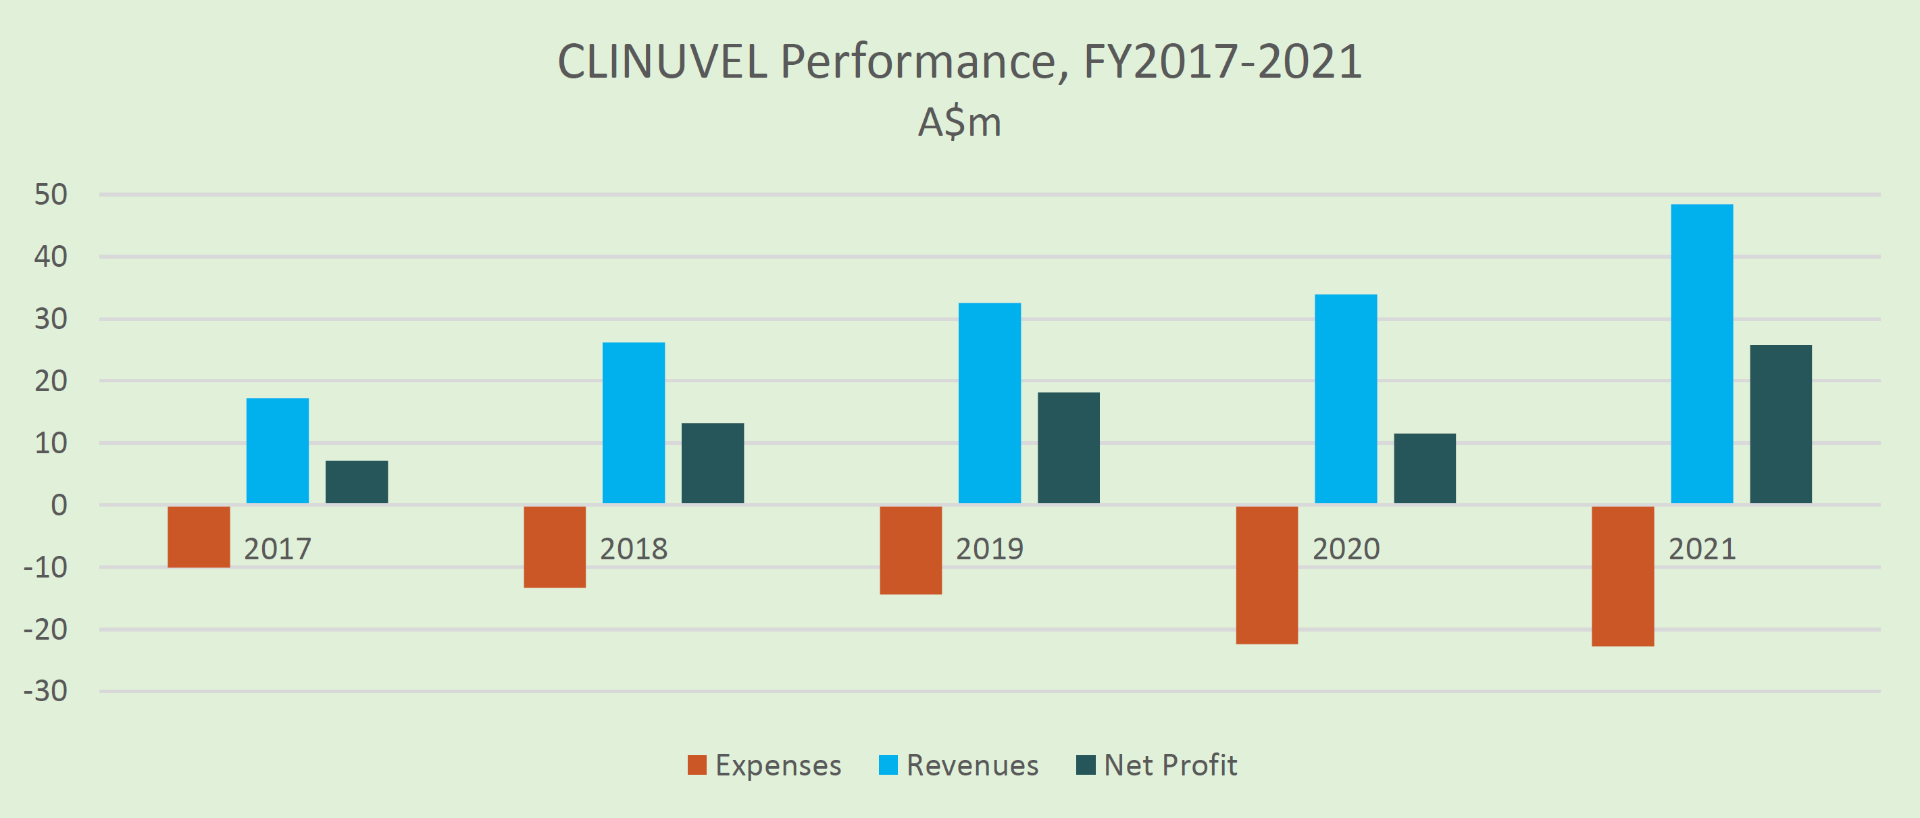 CLINUVEL Performance FY2017 - 2021 graph